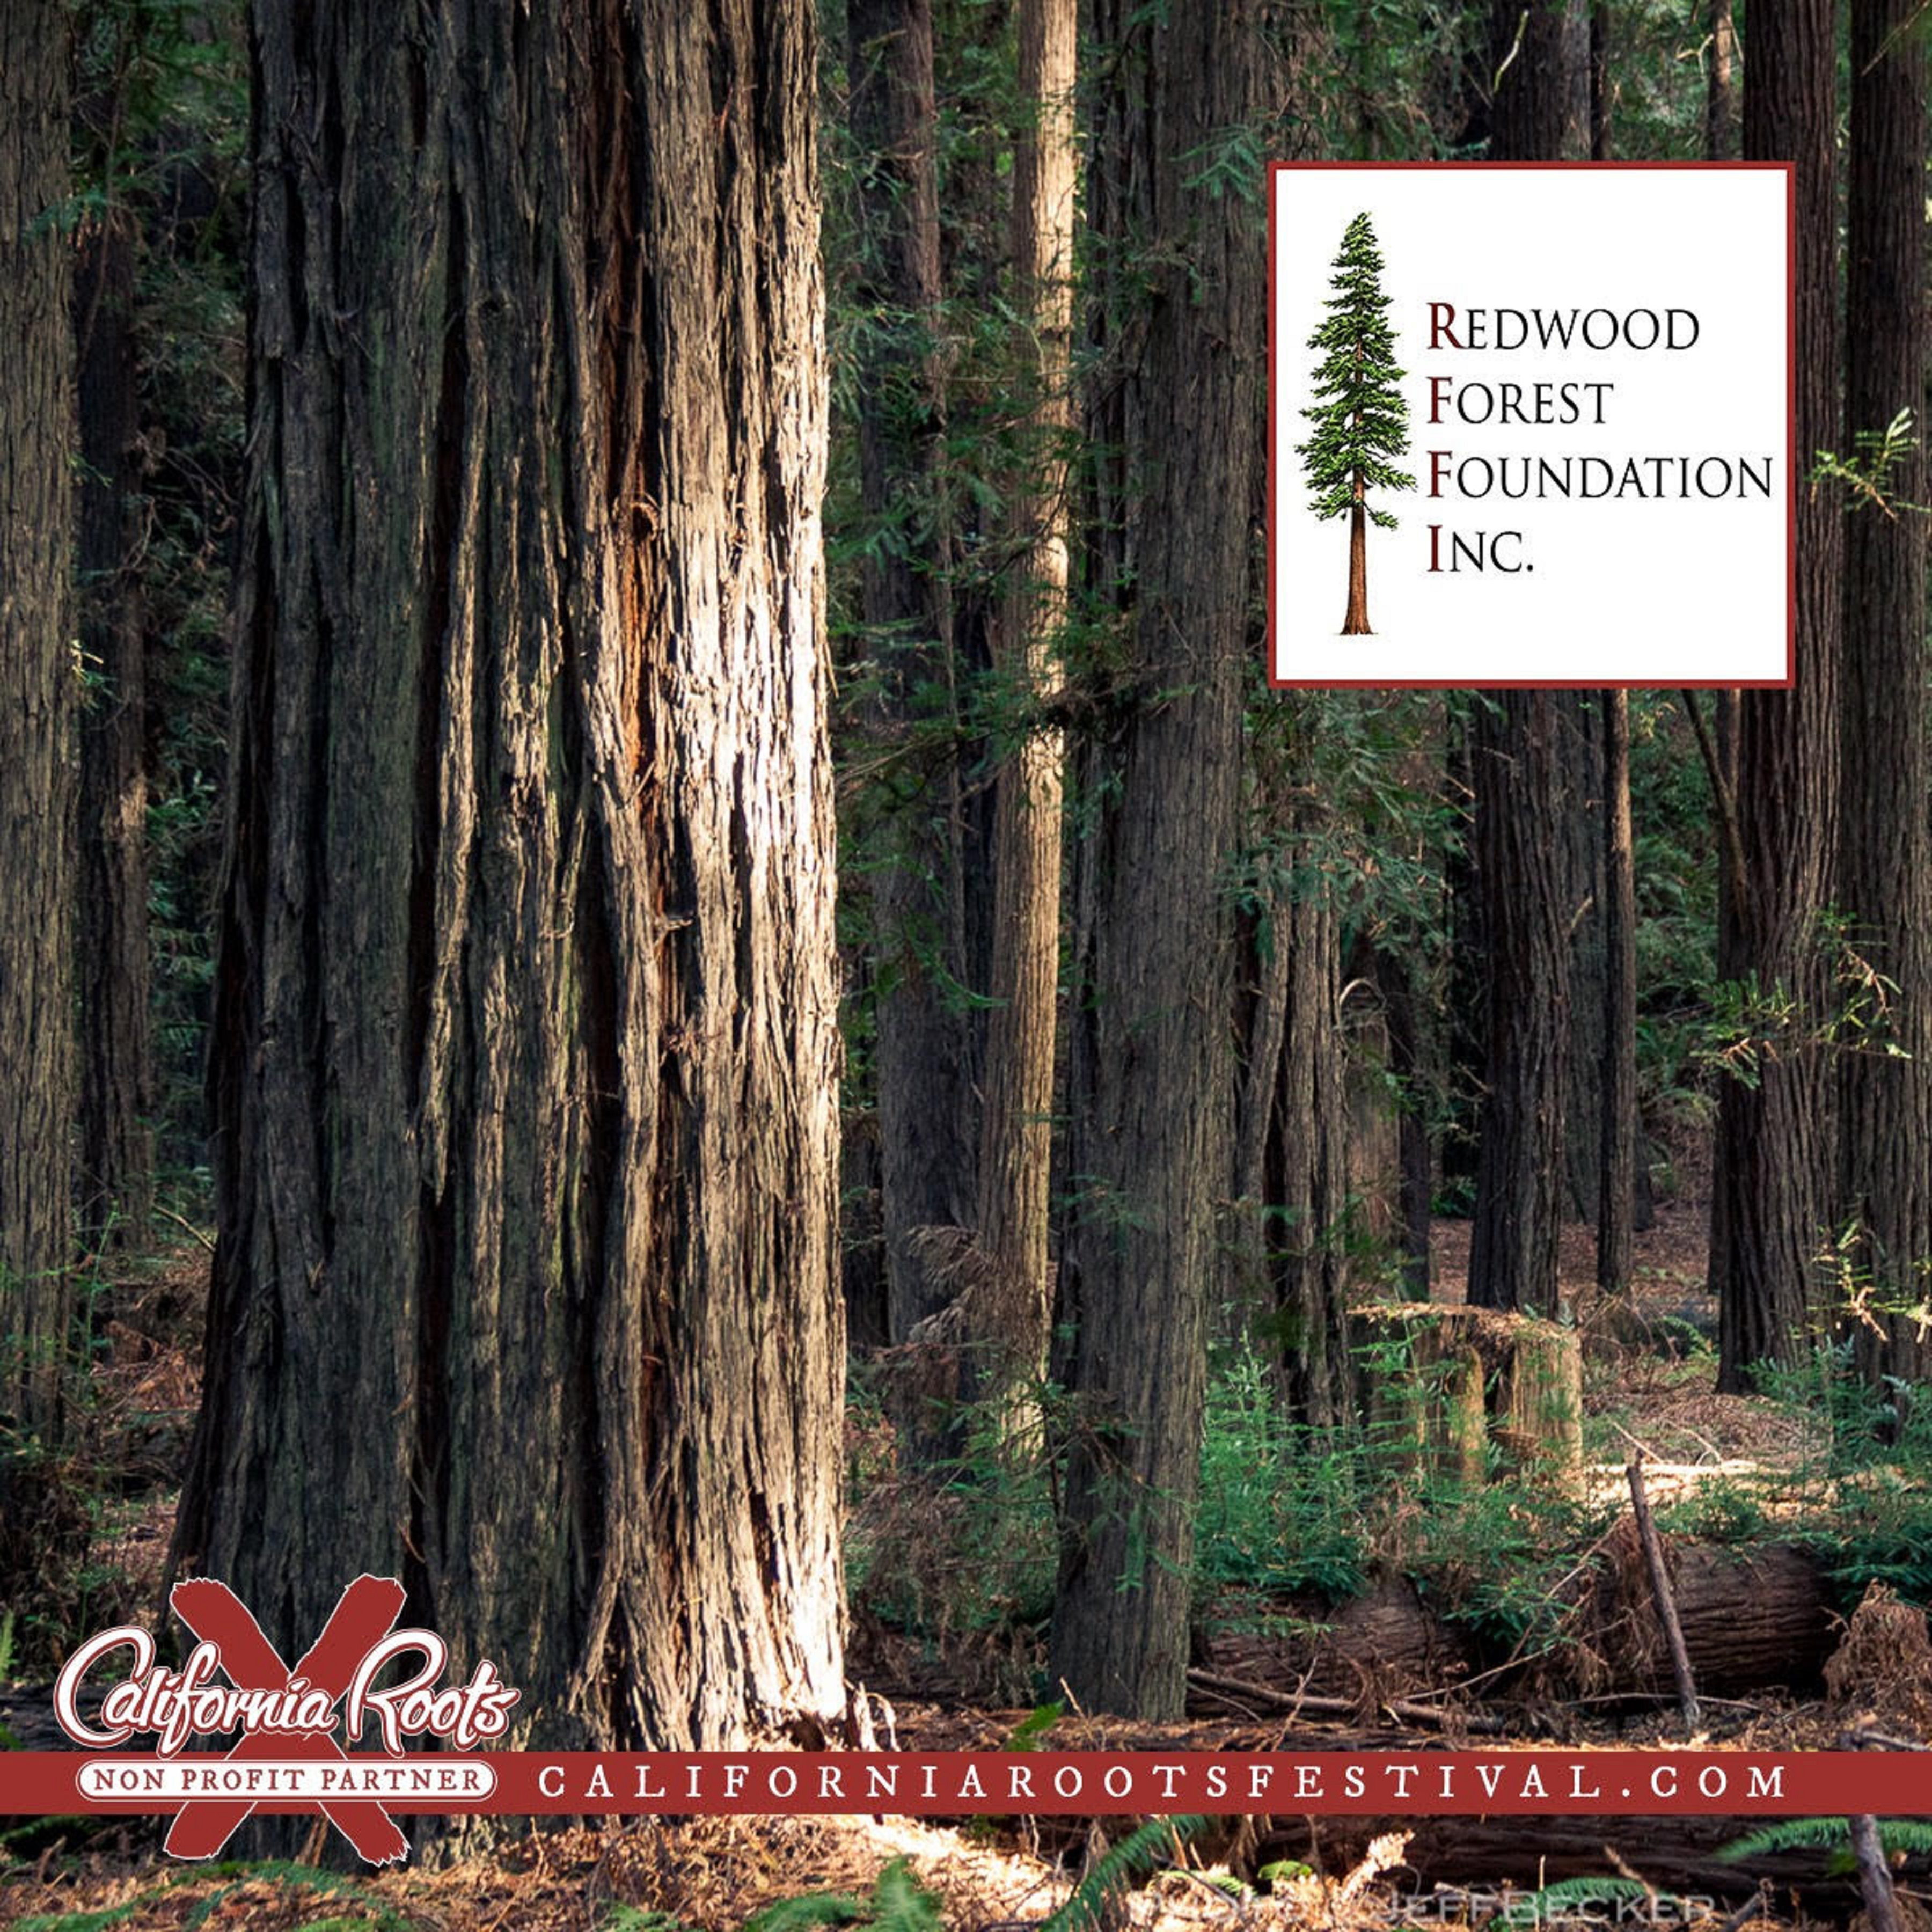 California Roots Music And Arts Festival Continues Its Partnership With Redwood Forest Foundation To Plant More Than 2,400 Redwoods In 2019